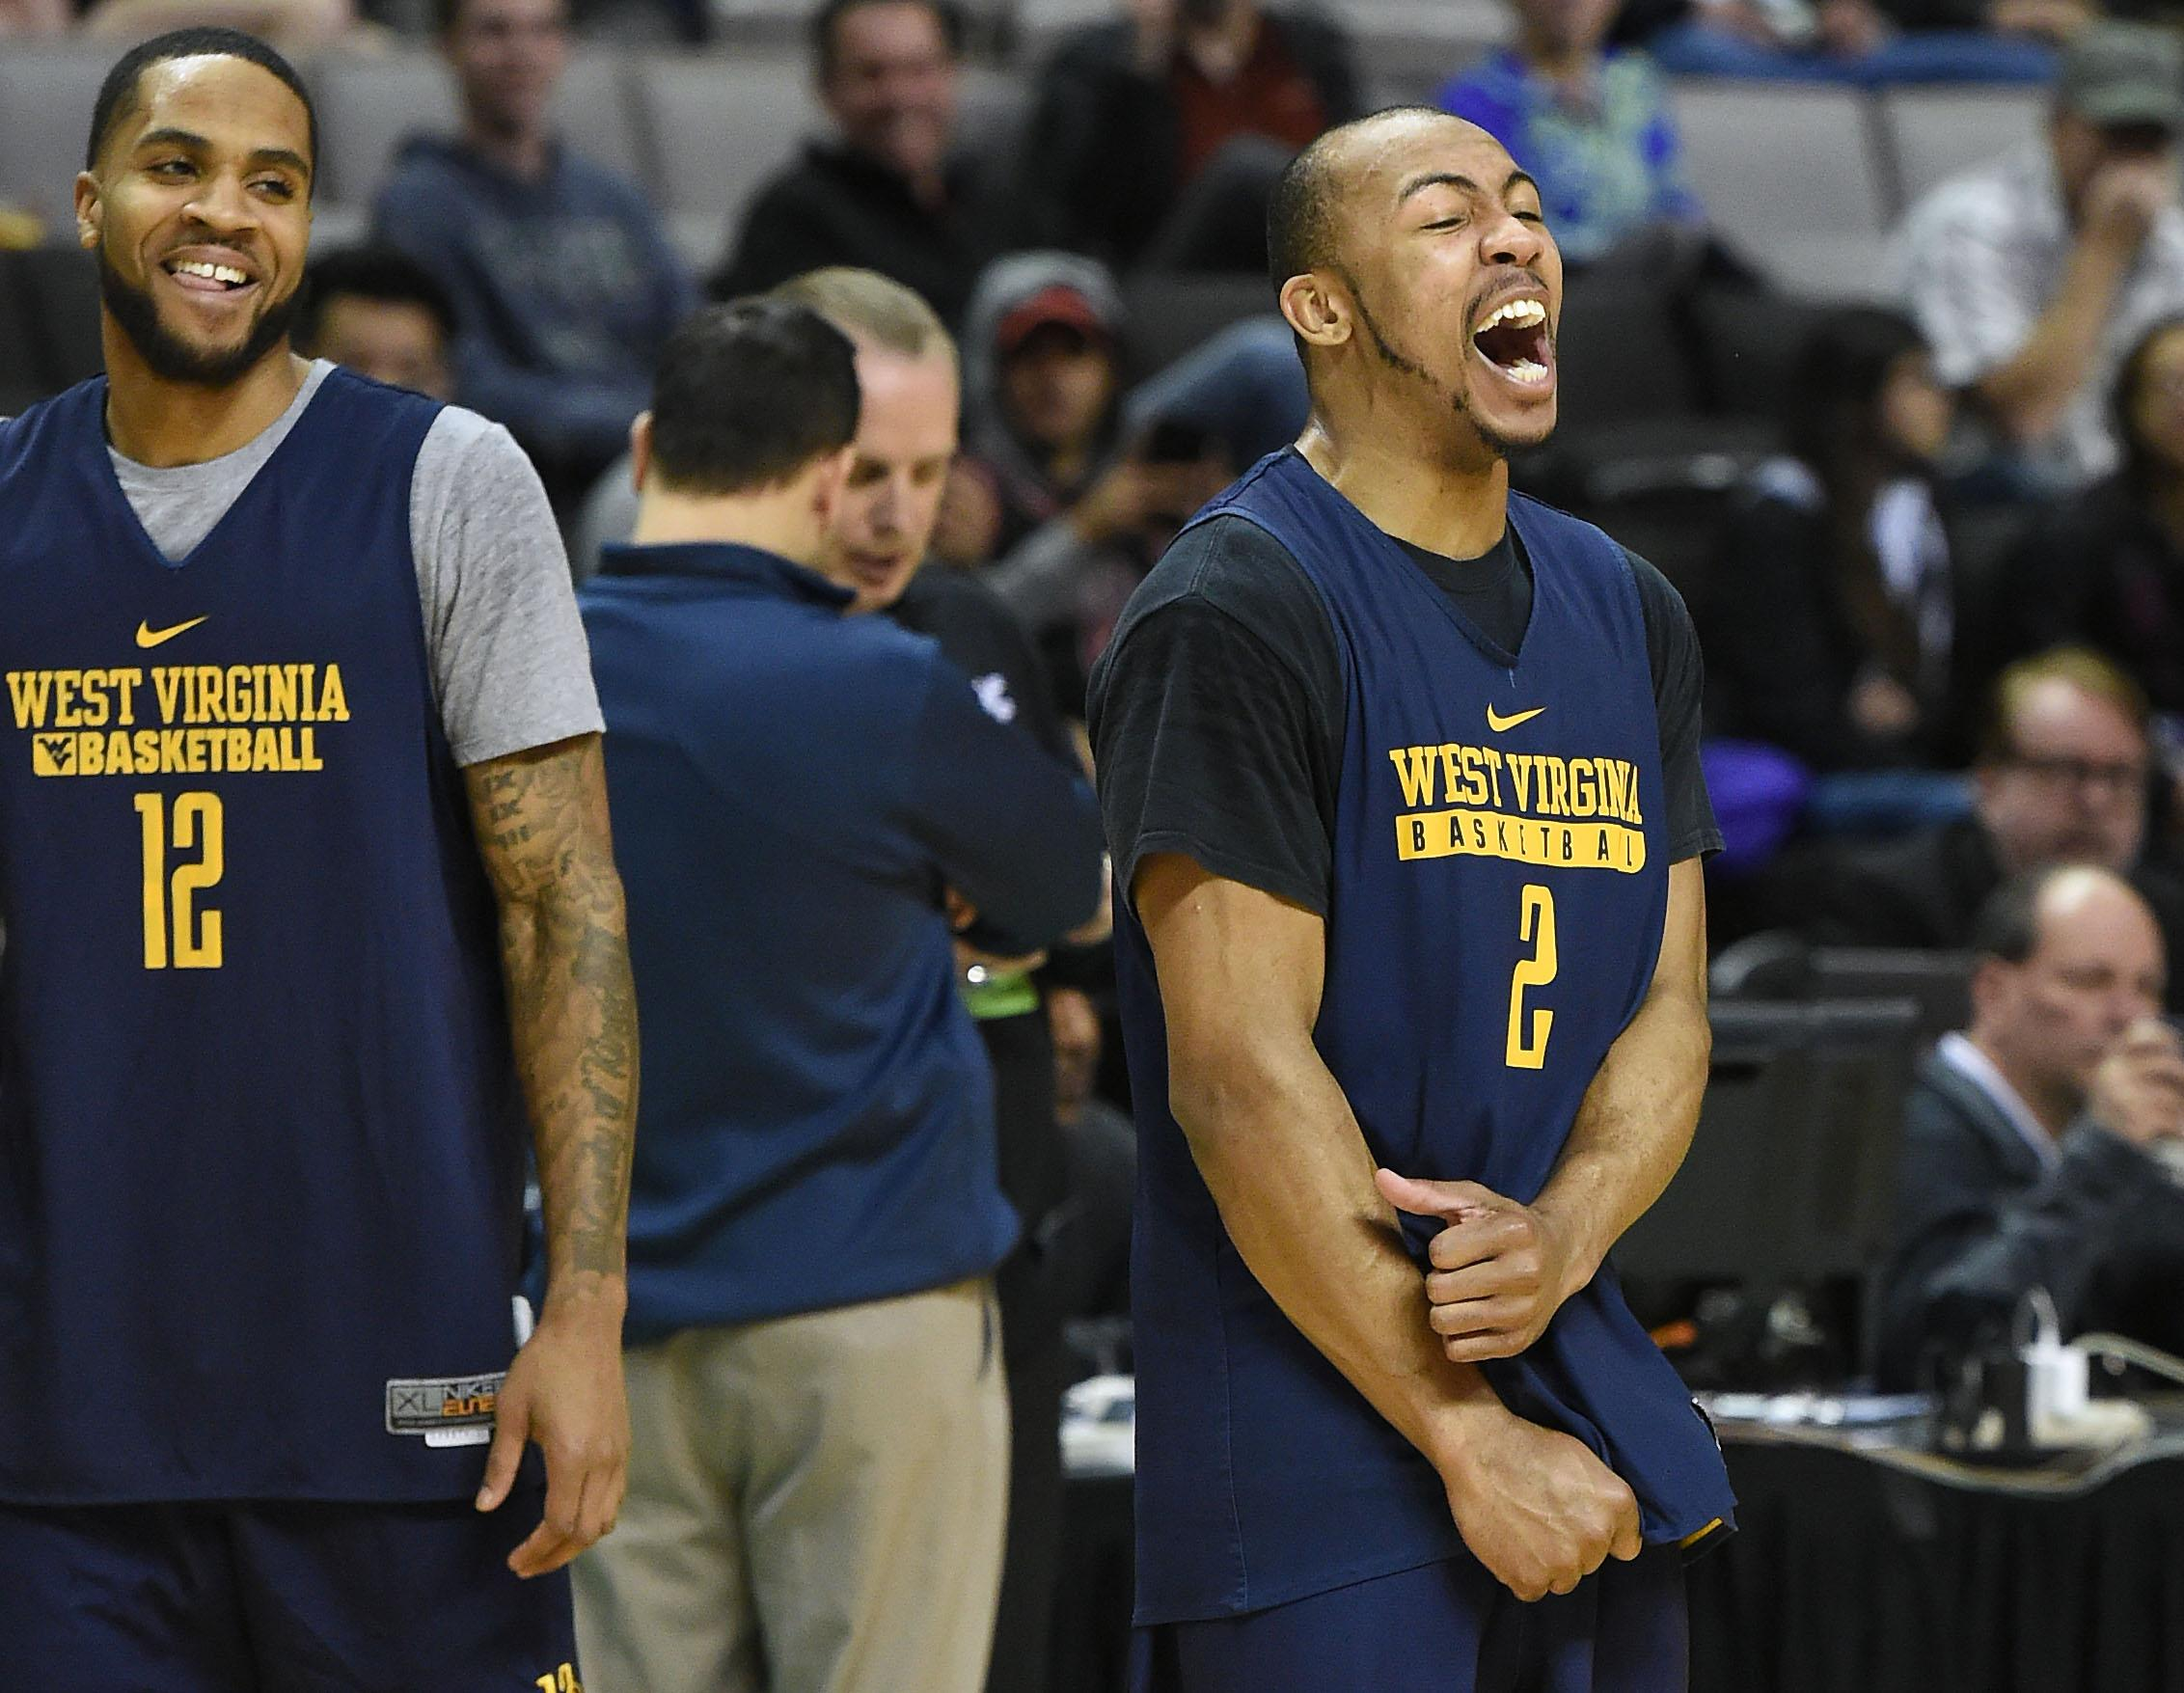 West Virginia loses to Gonzaga, Twitter jokes hit nothing but net